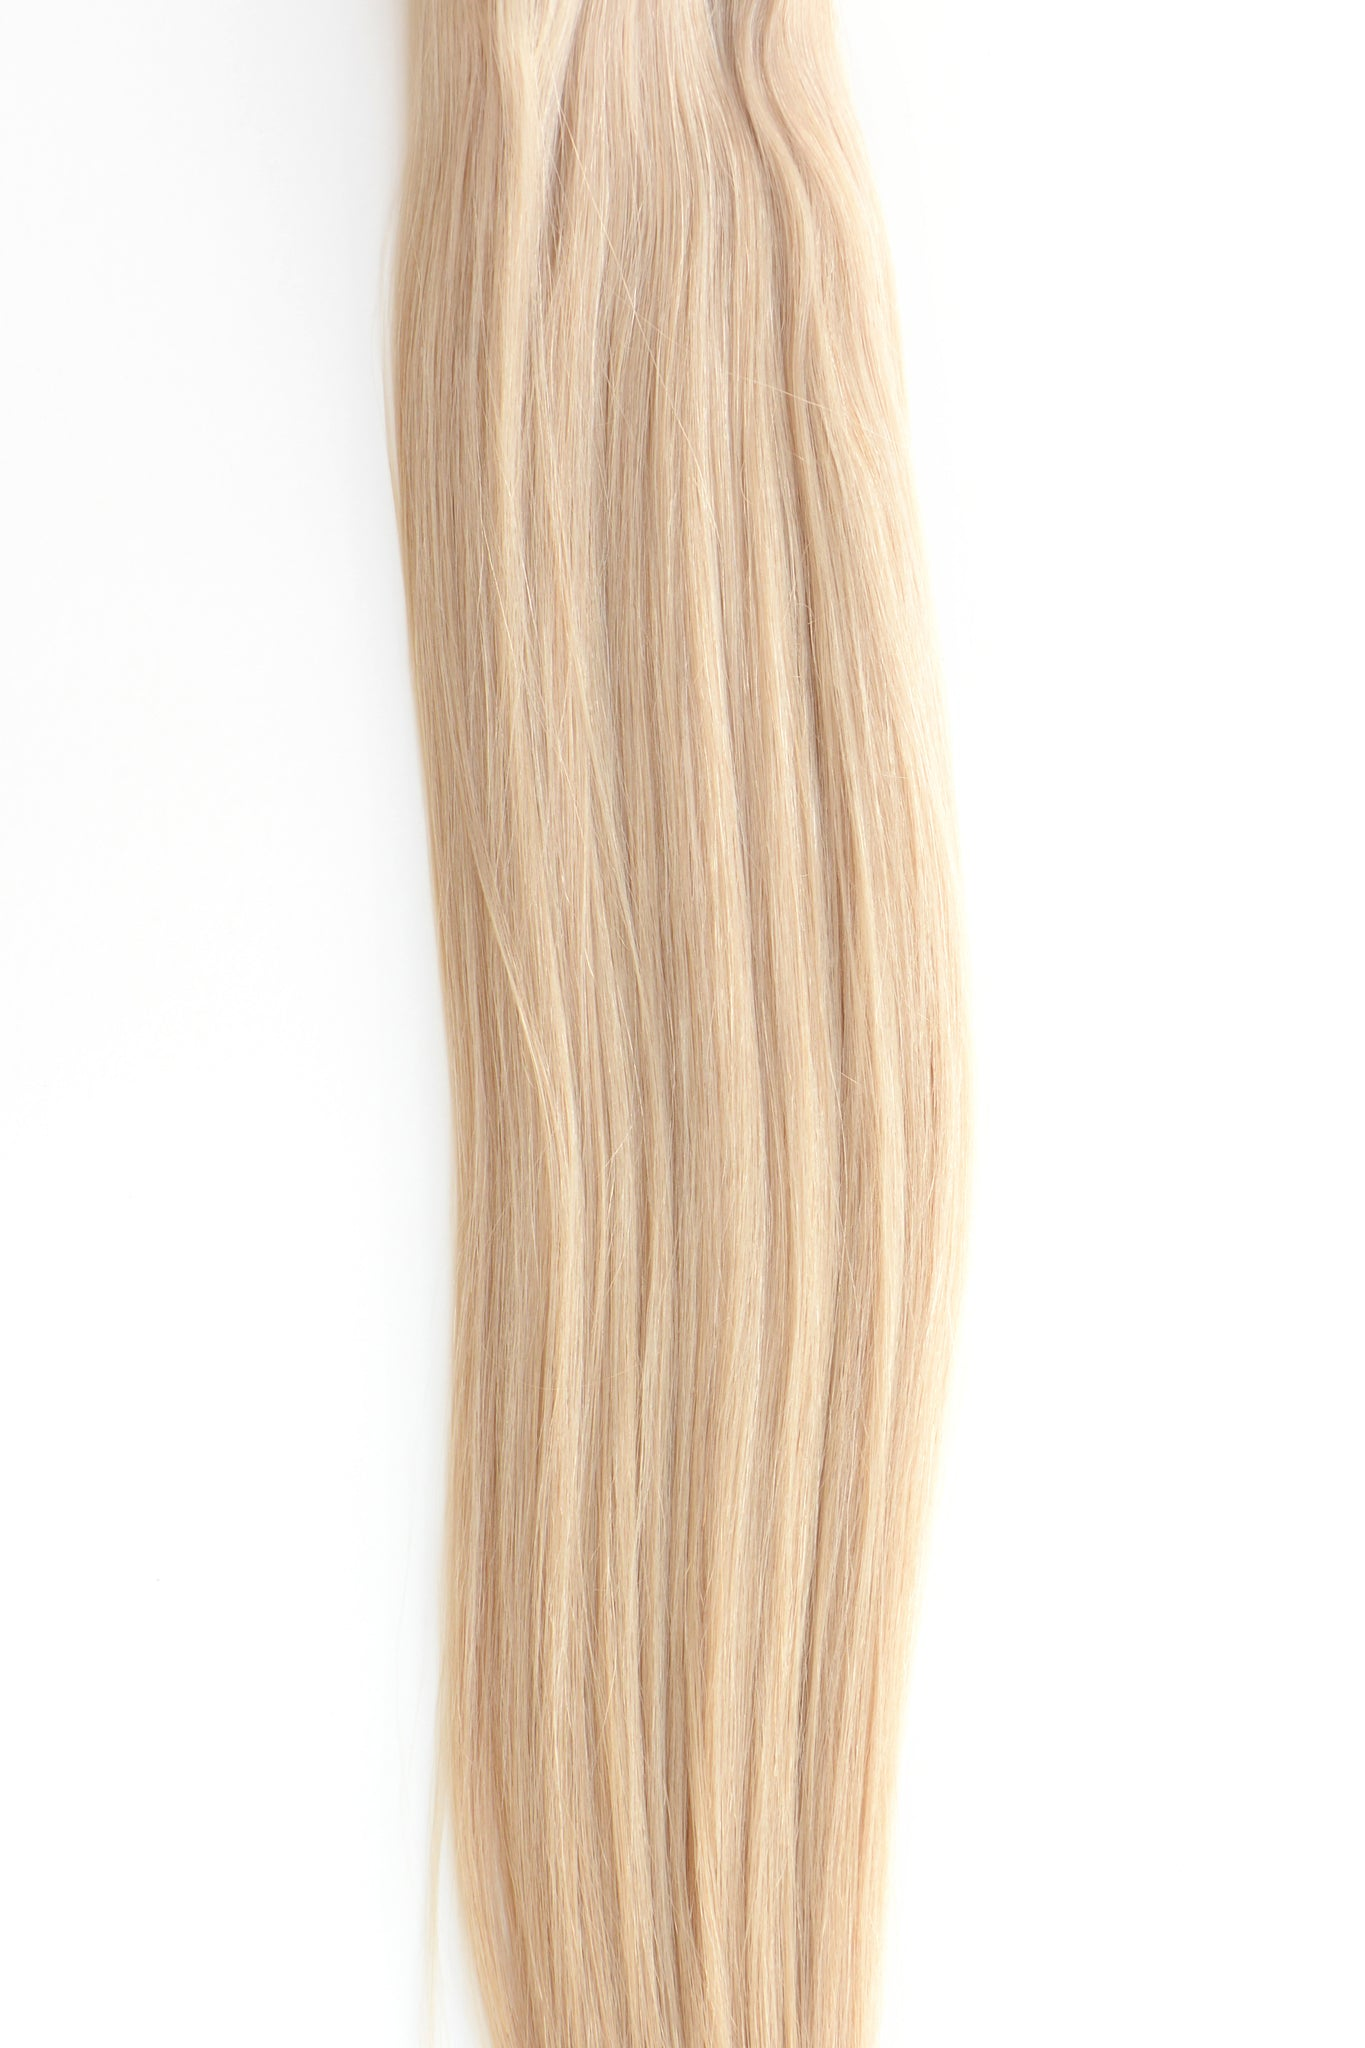 Balboa Hair Extension from Pryme Hair